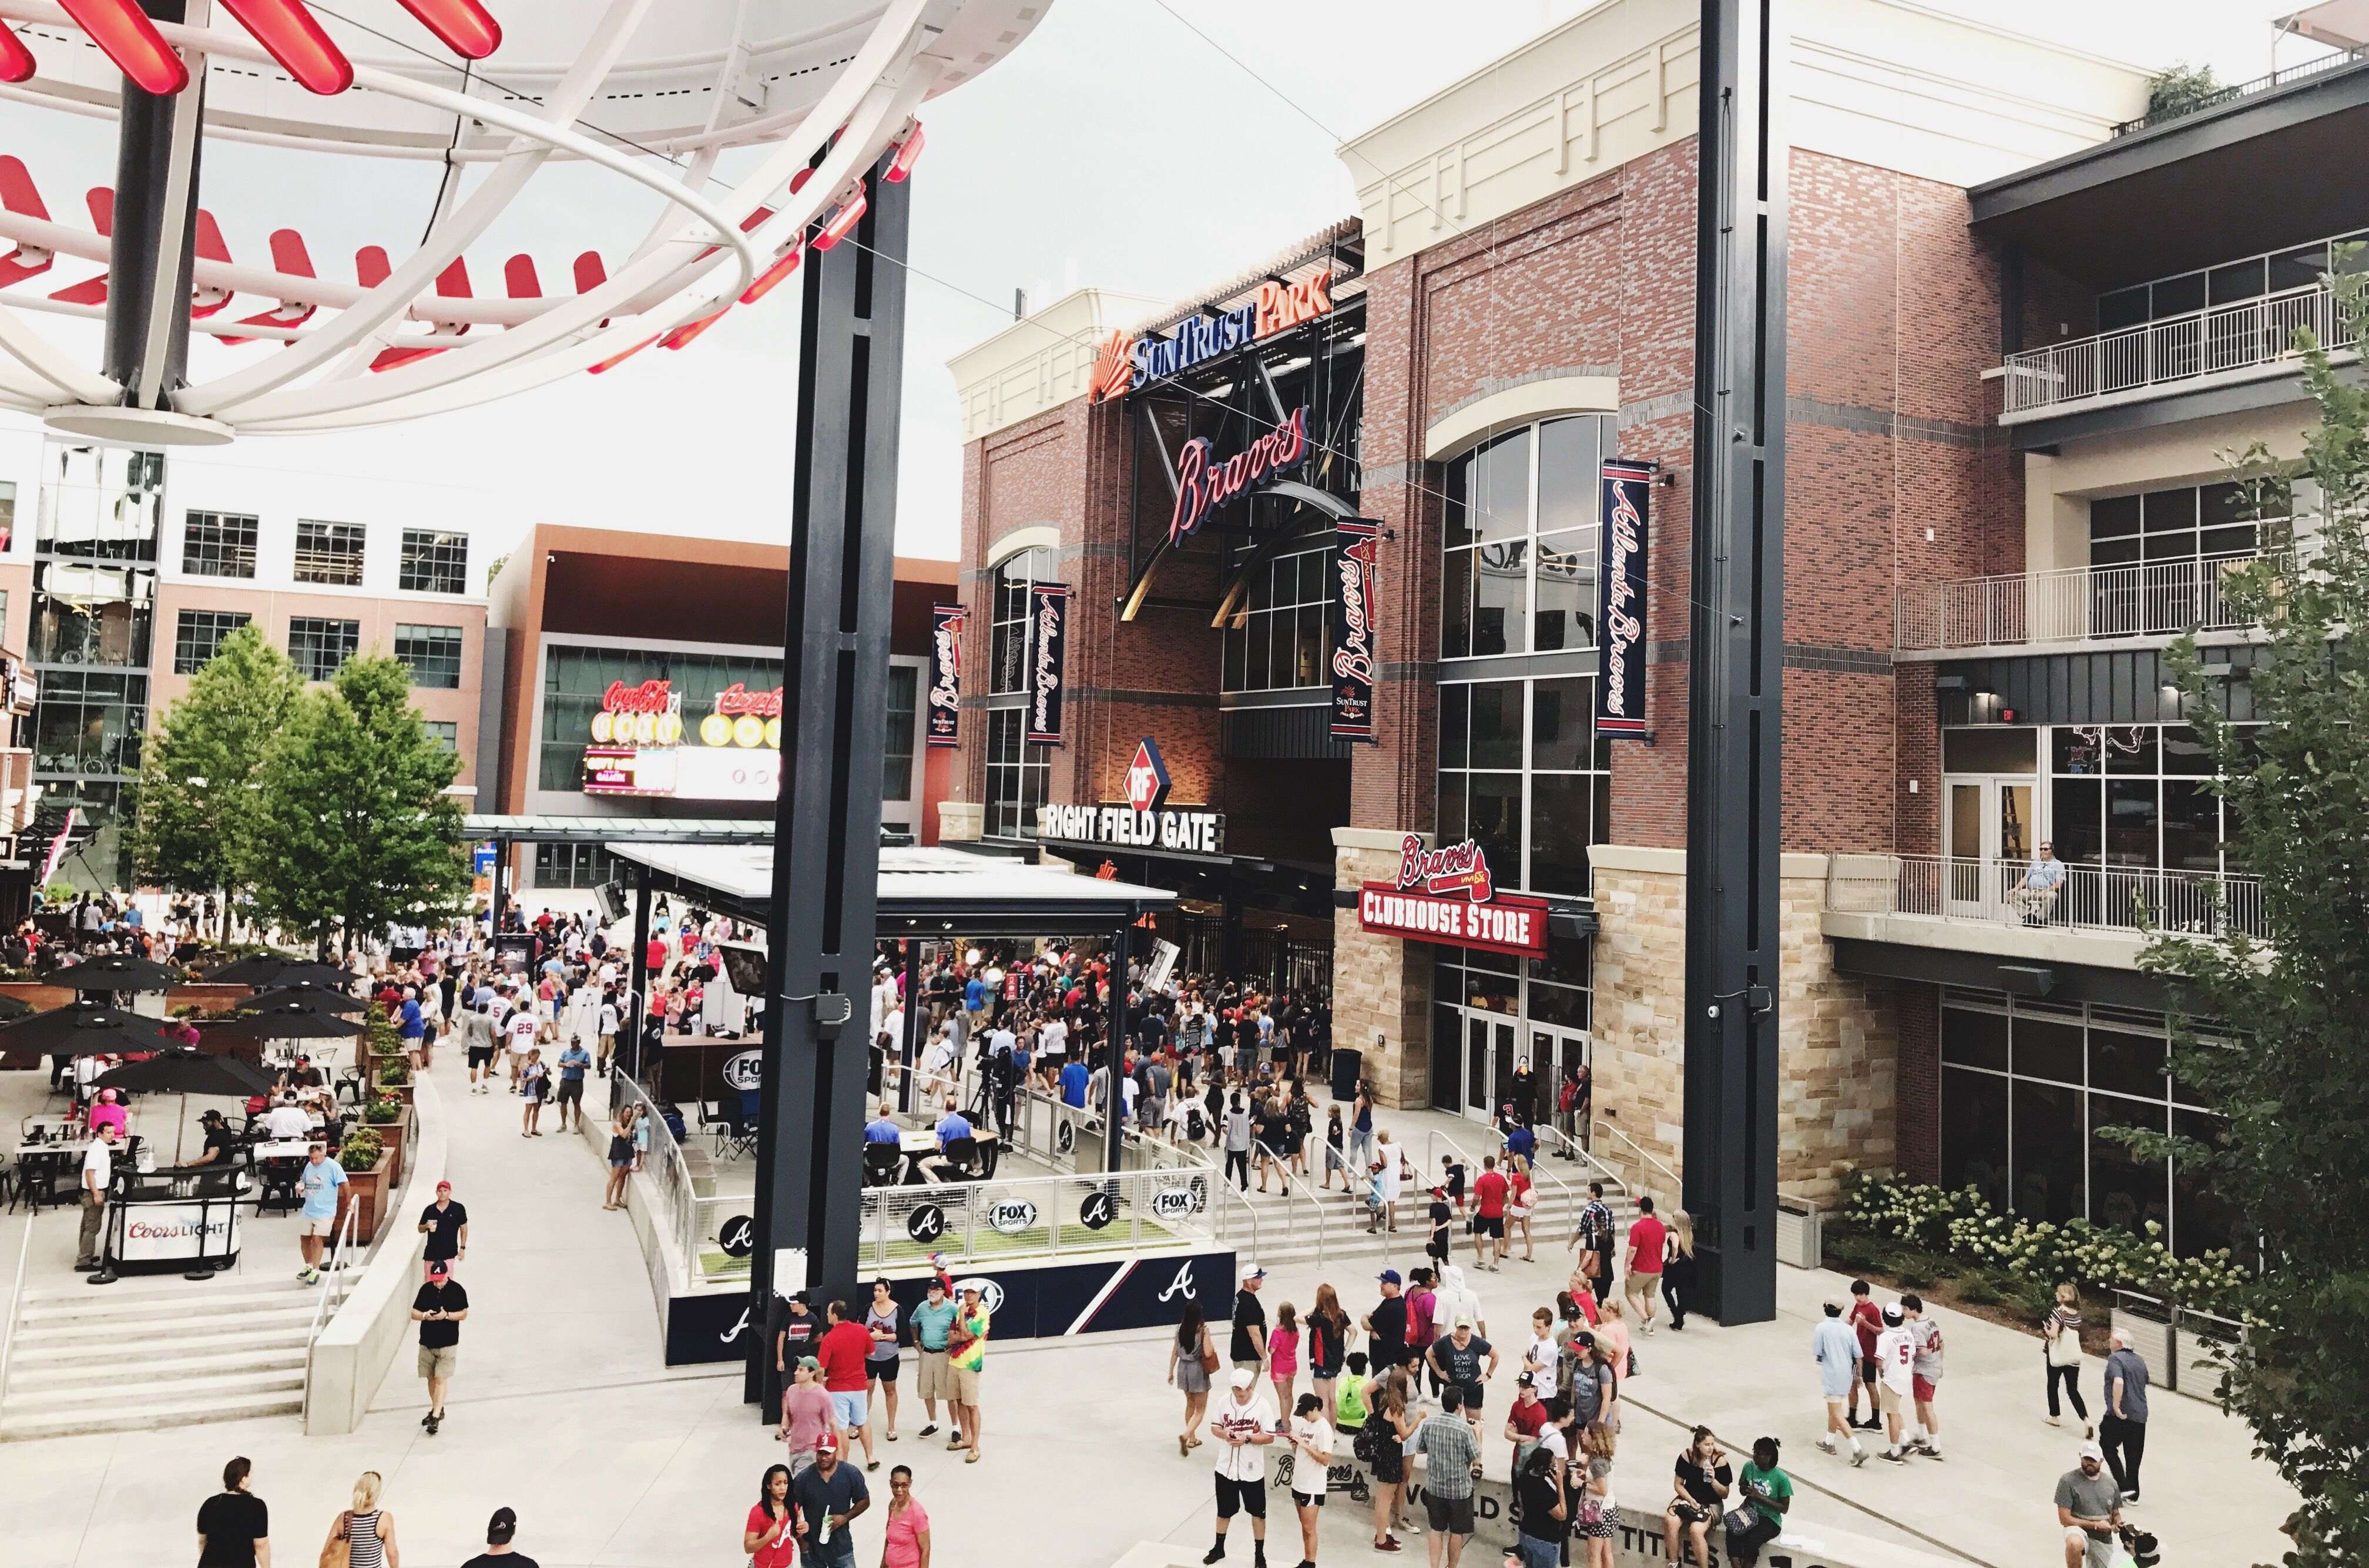 Atlanta Braves Game 10 Things To Do With Kids At Suntrust Park Suntrust Park Braves Game Atlanta Braves Game